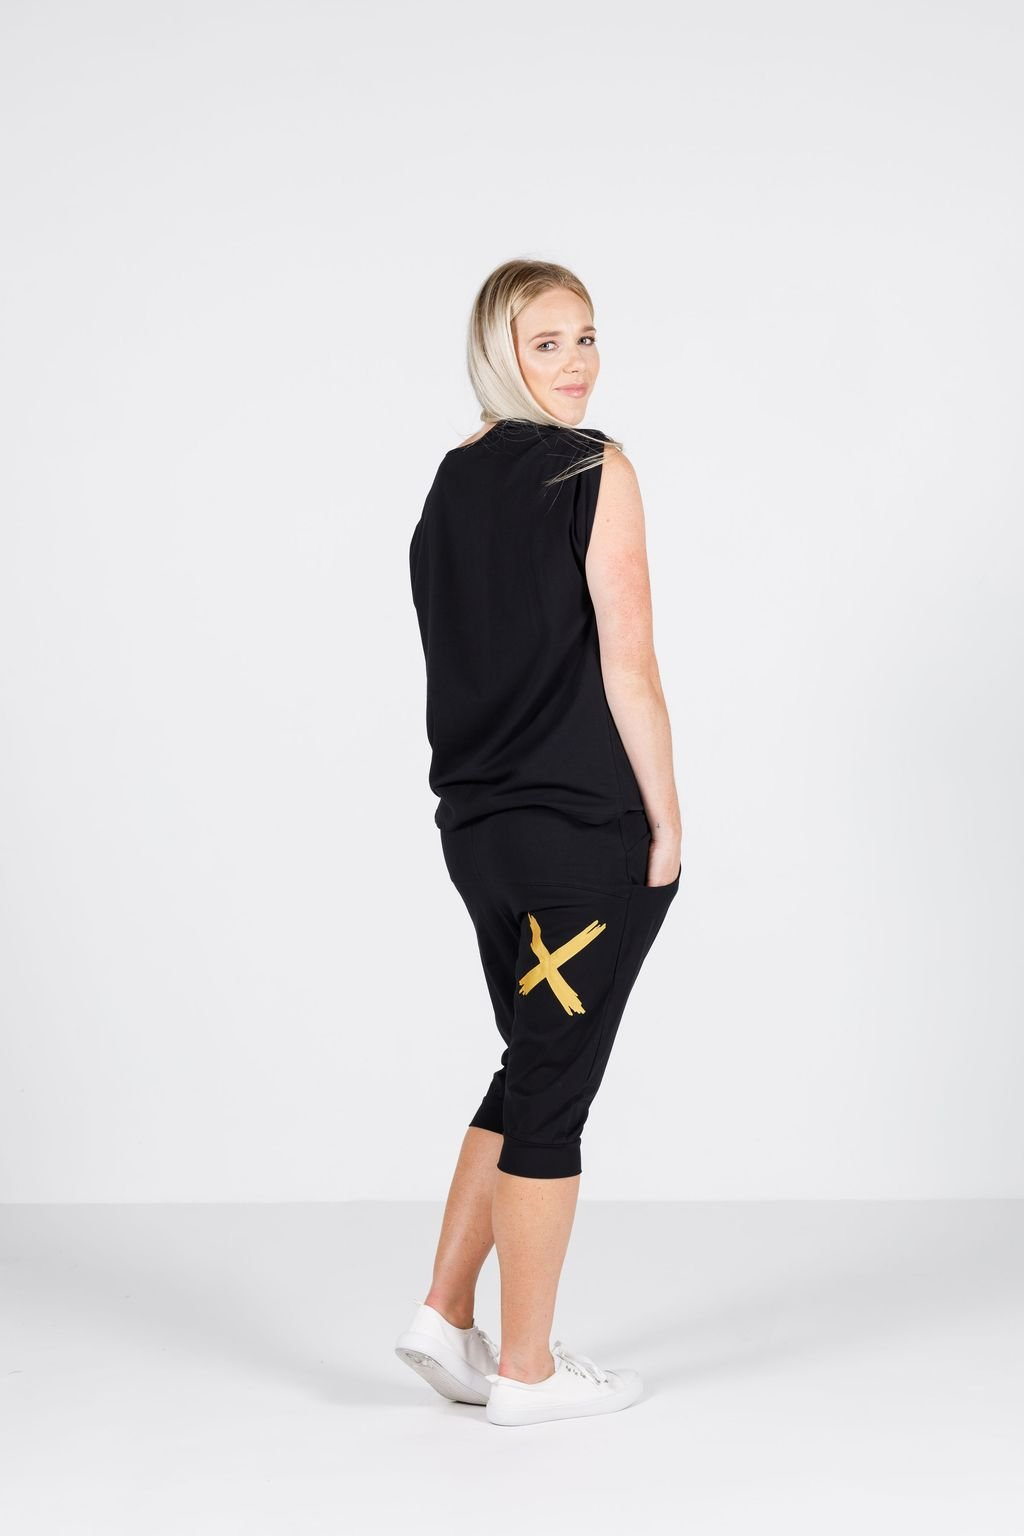 3/4 APARTMENT PANT BLACK WITH GOLD PRINT - No image set - Ebony Boutique NZ